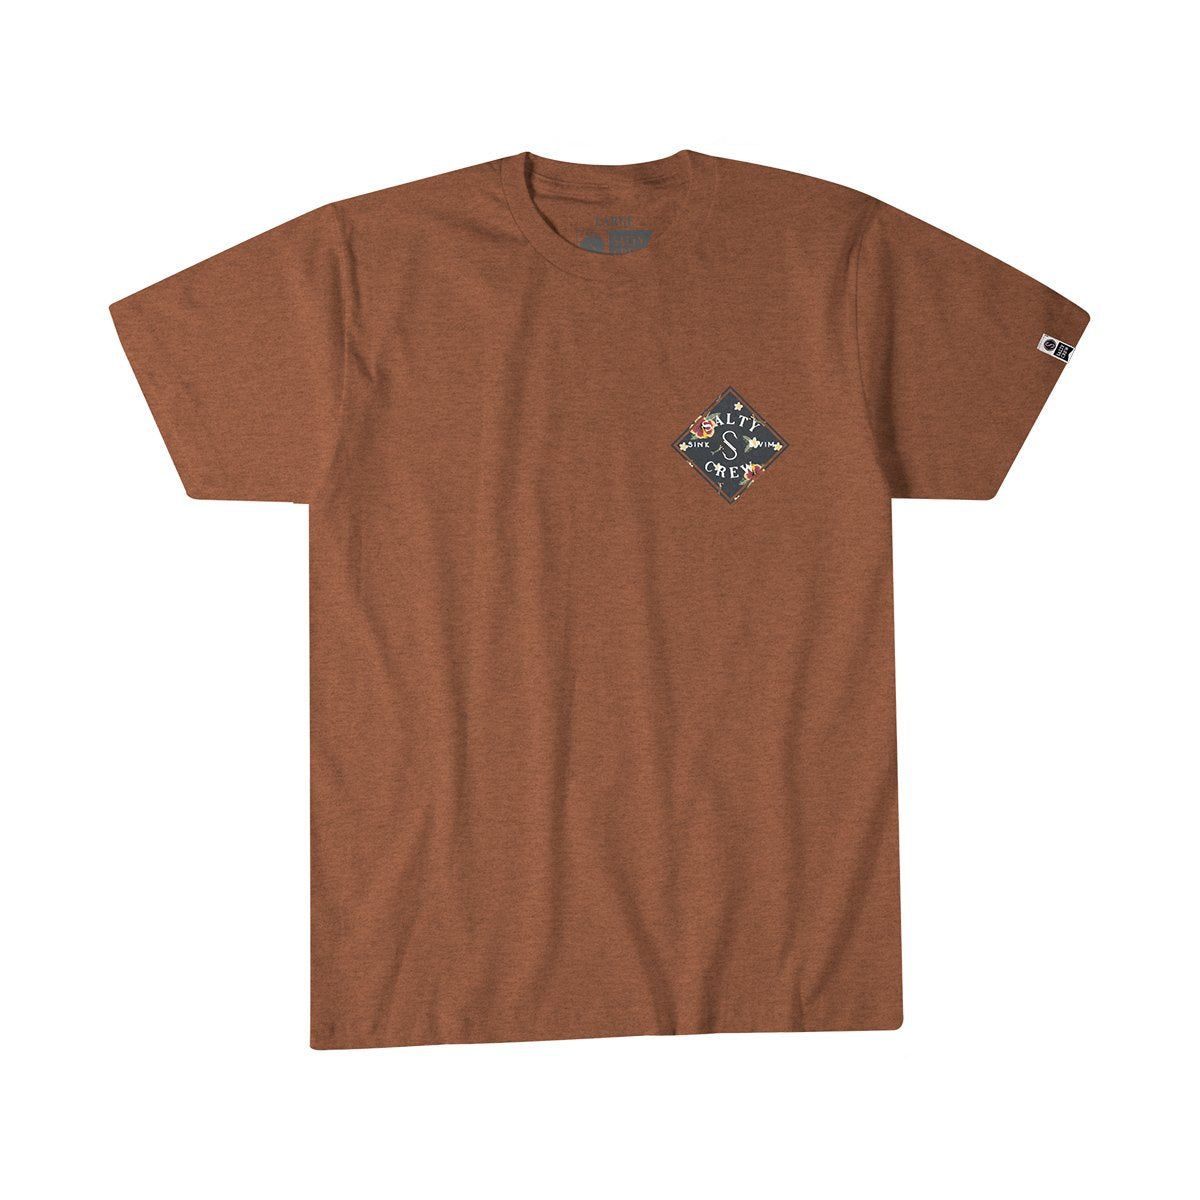 Salty Crew Island Time T-Shirt - 88 Gear